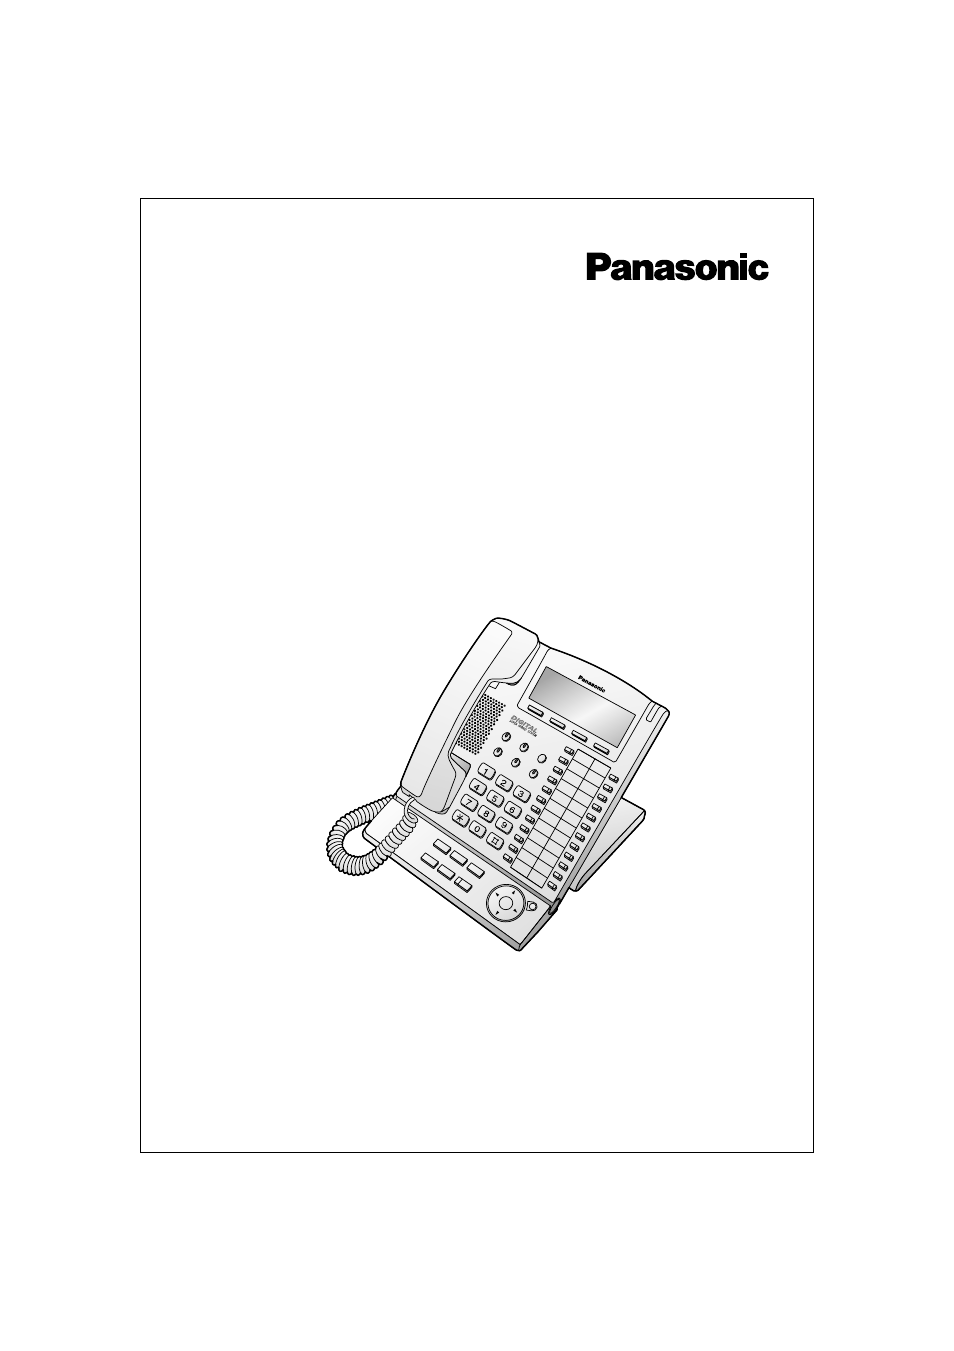 panasonic kx t7633 user manual 25 pages also for kx t7625 rh manualsdir com Panasonic TV Manual Panasonic Owner's Manual